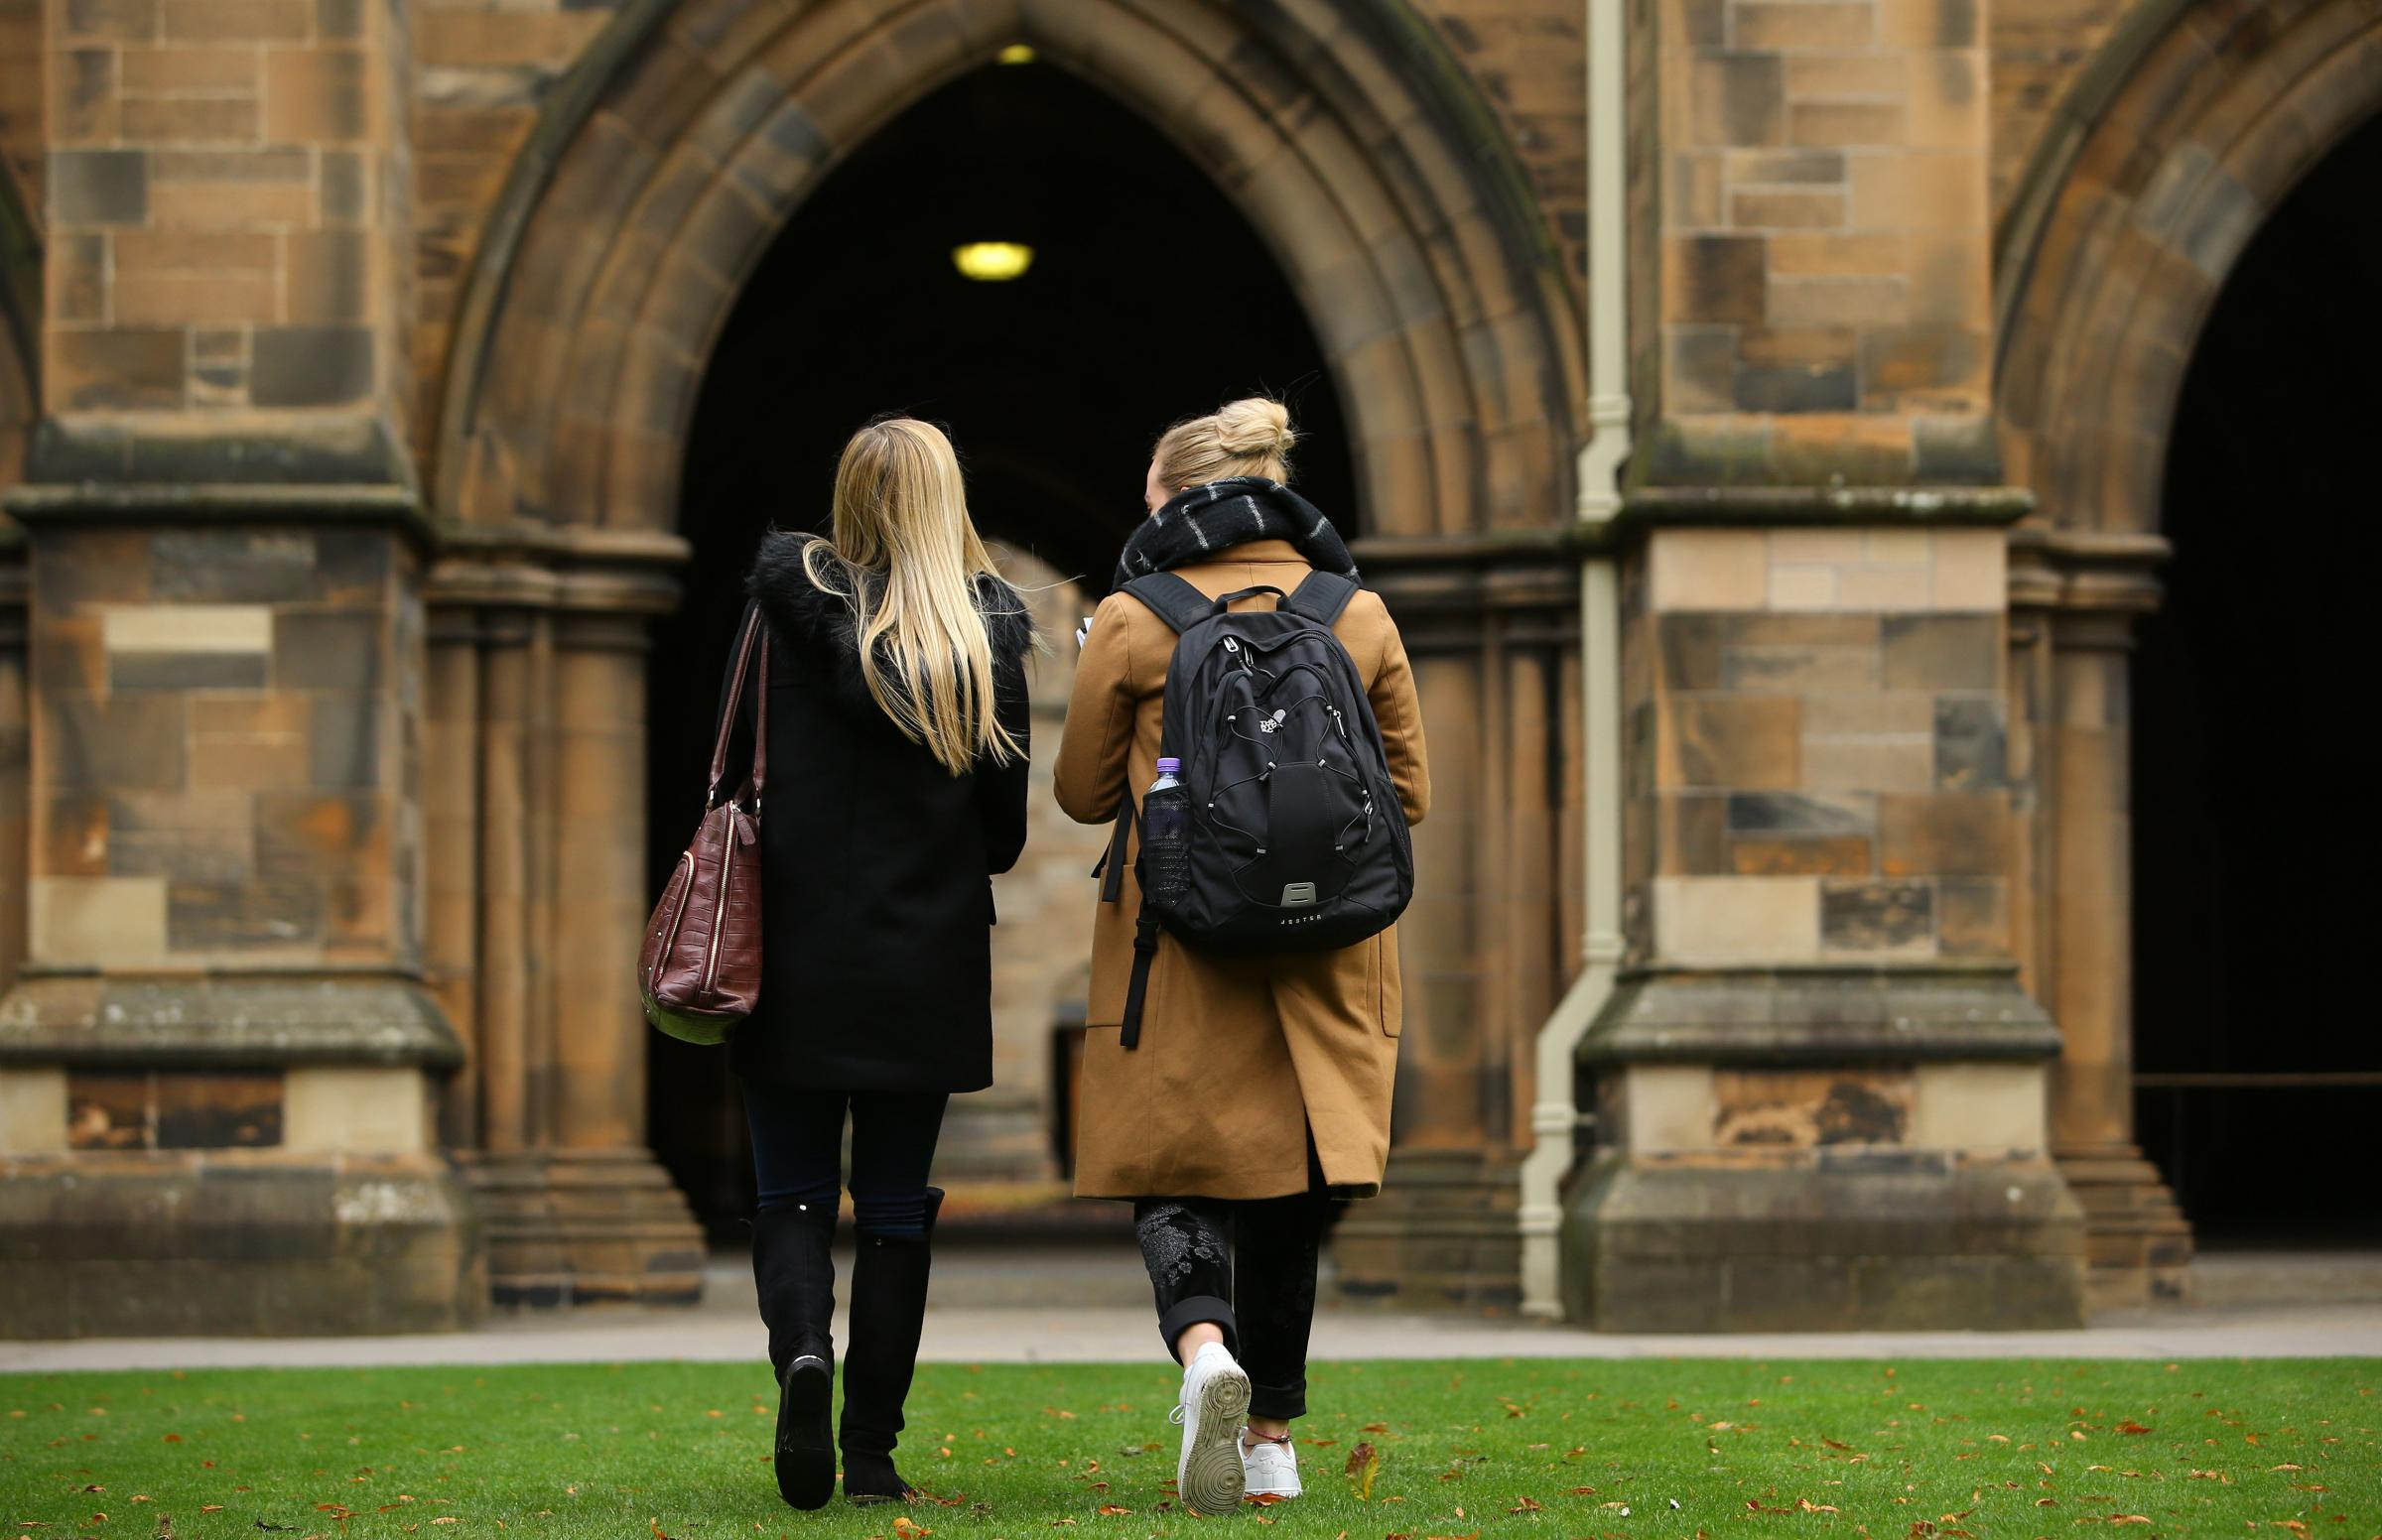 Consultation on Glasgow student accommodation to be launched